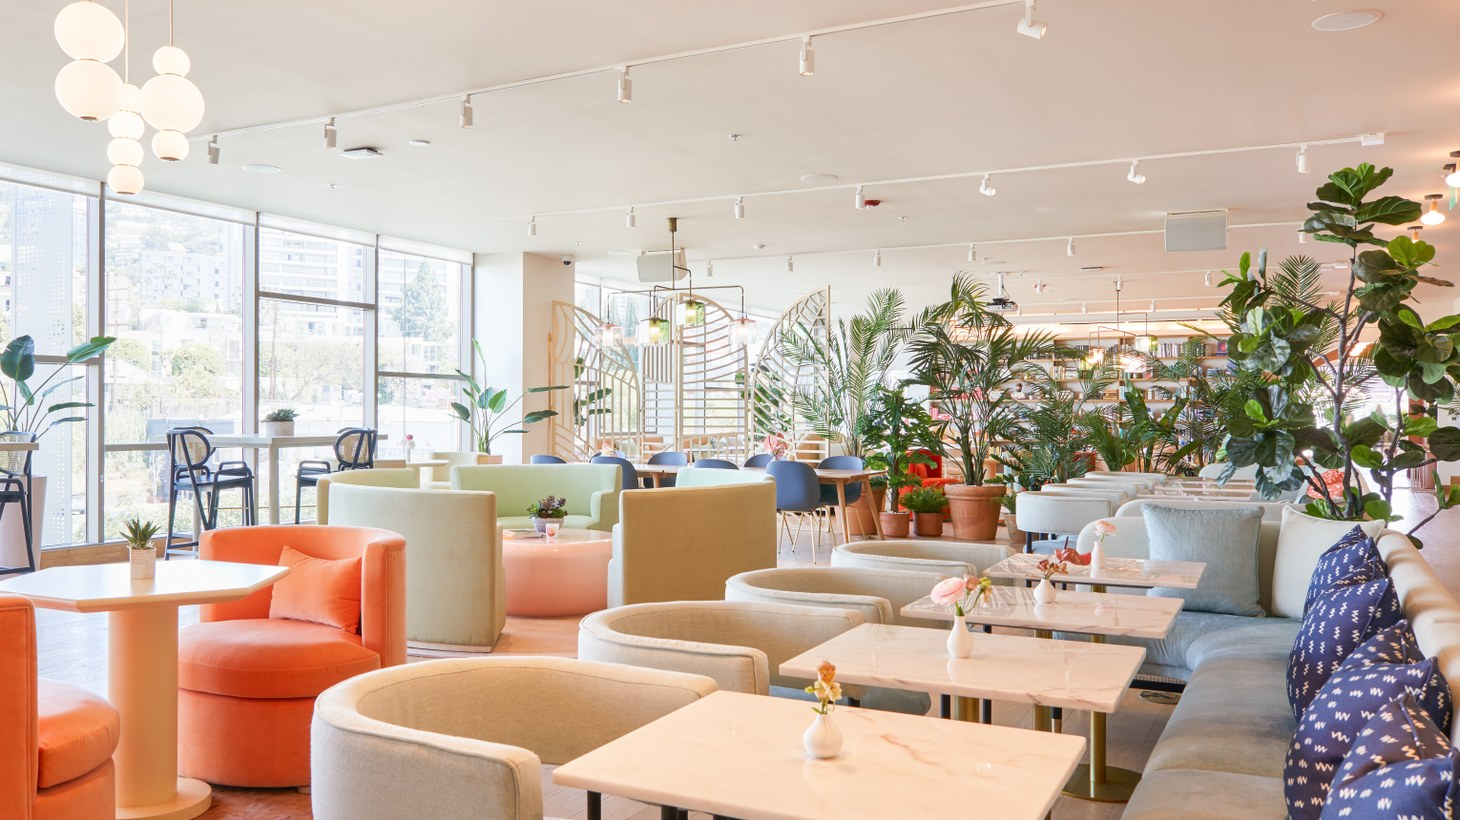 Soothing colors and shorter furniture are part of The Wing's women-centric design aesthetic.